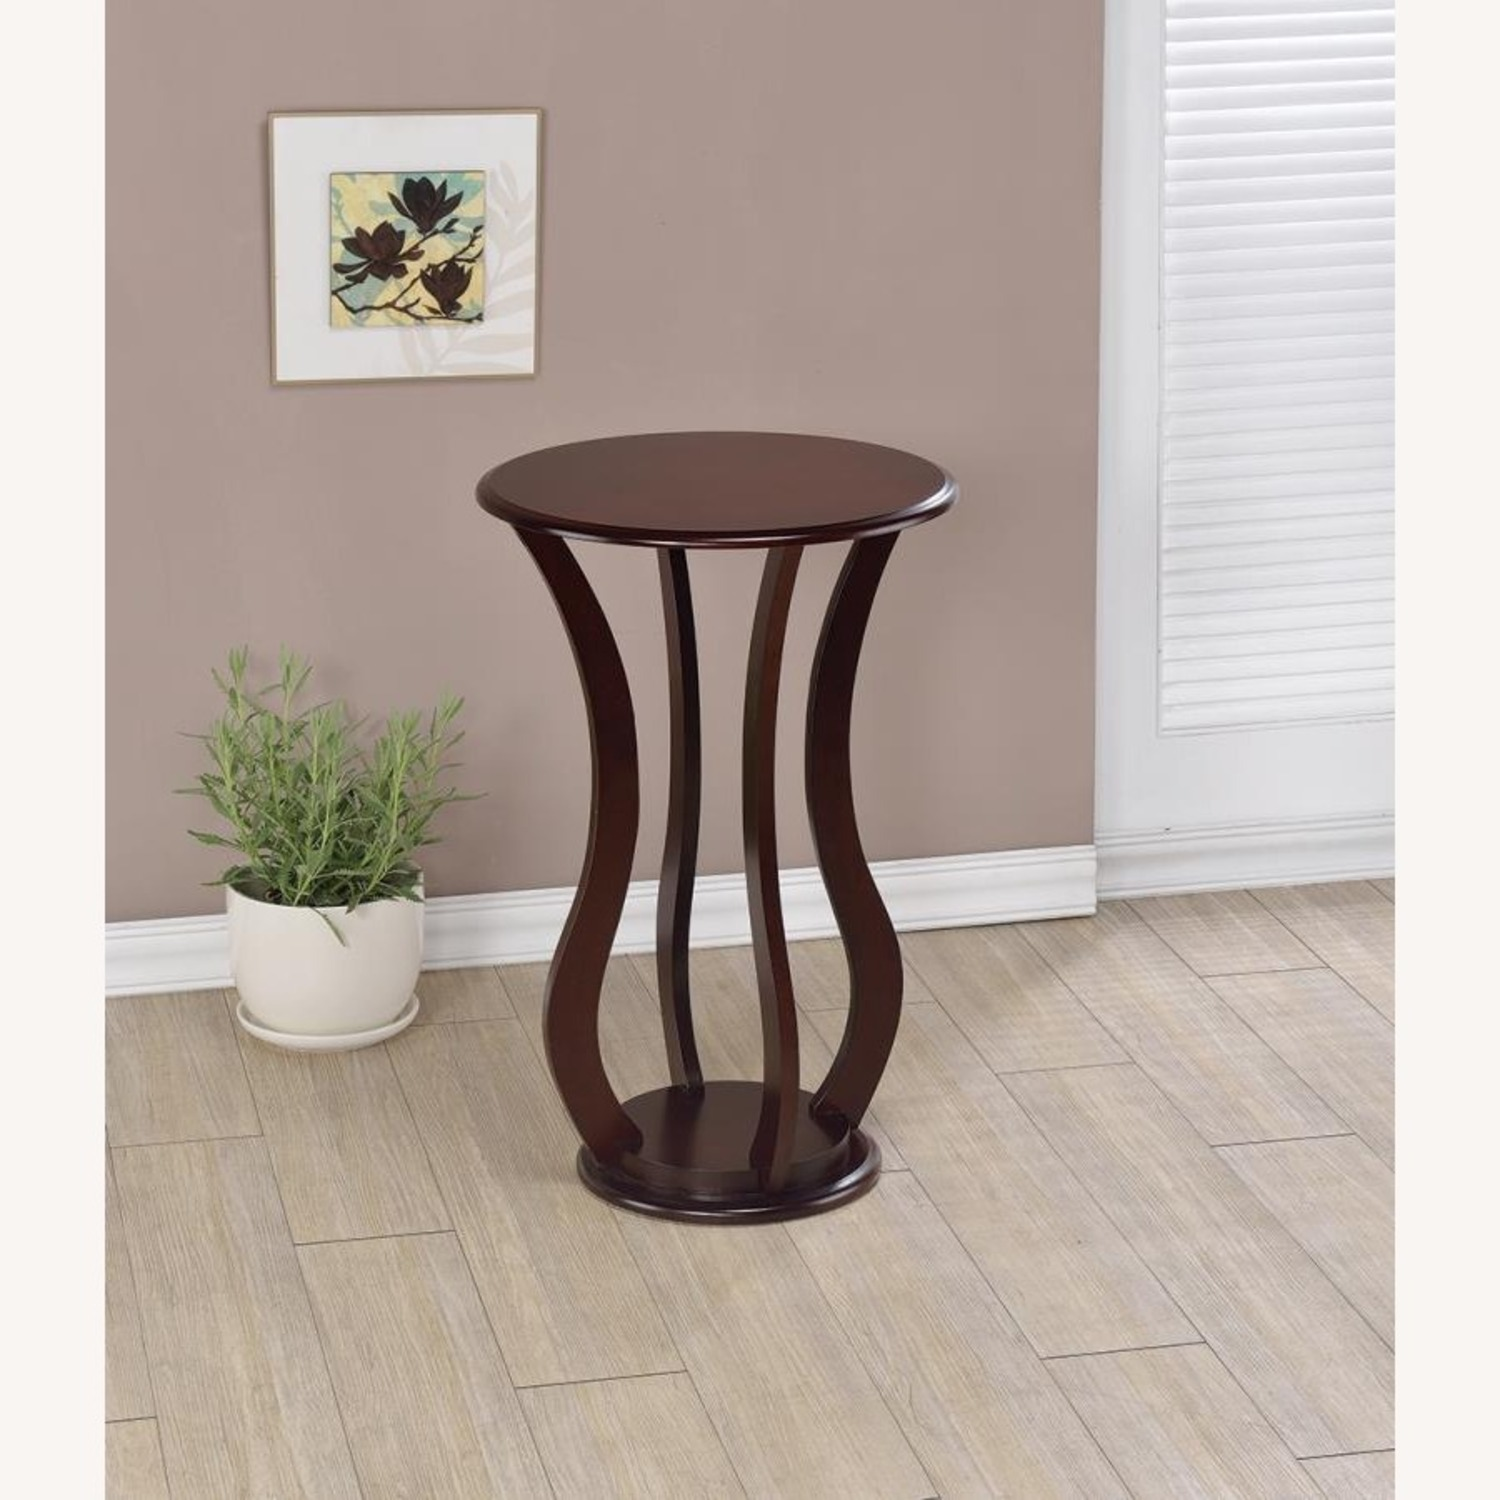 Accent Table In Cherry Finish W/ Bottom Shelf - image-2